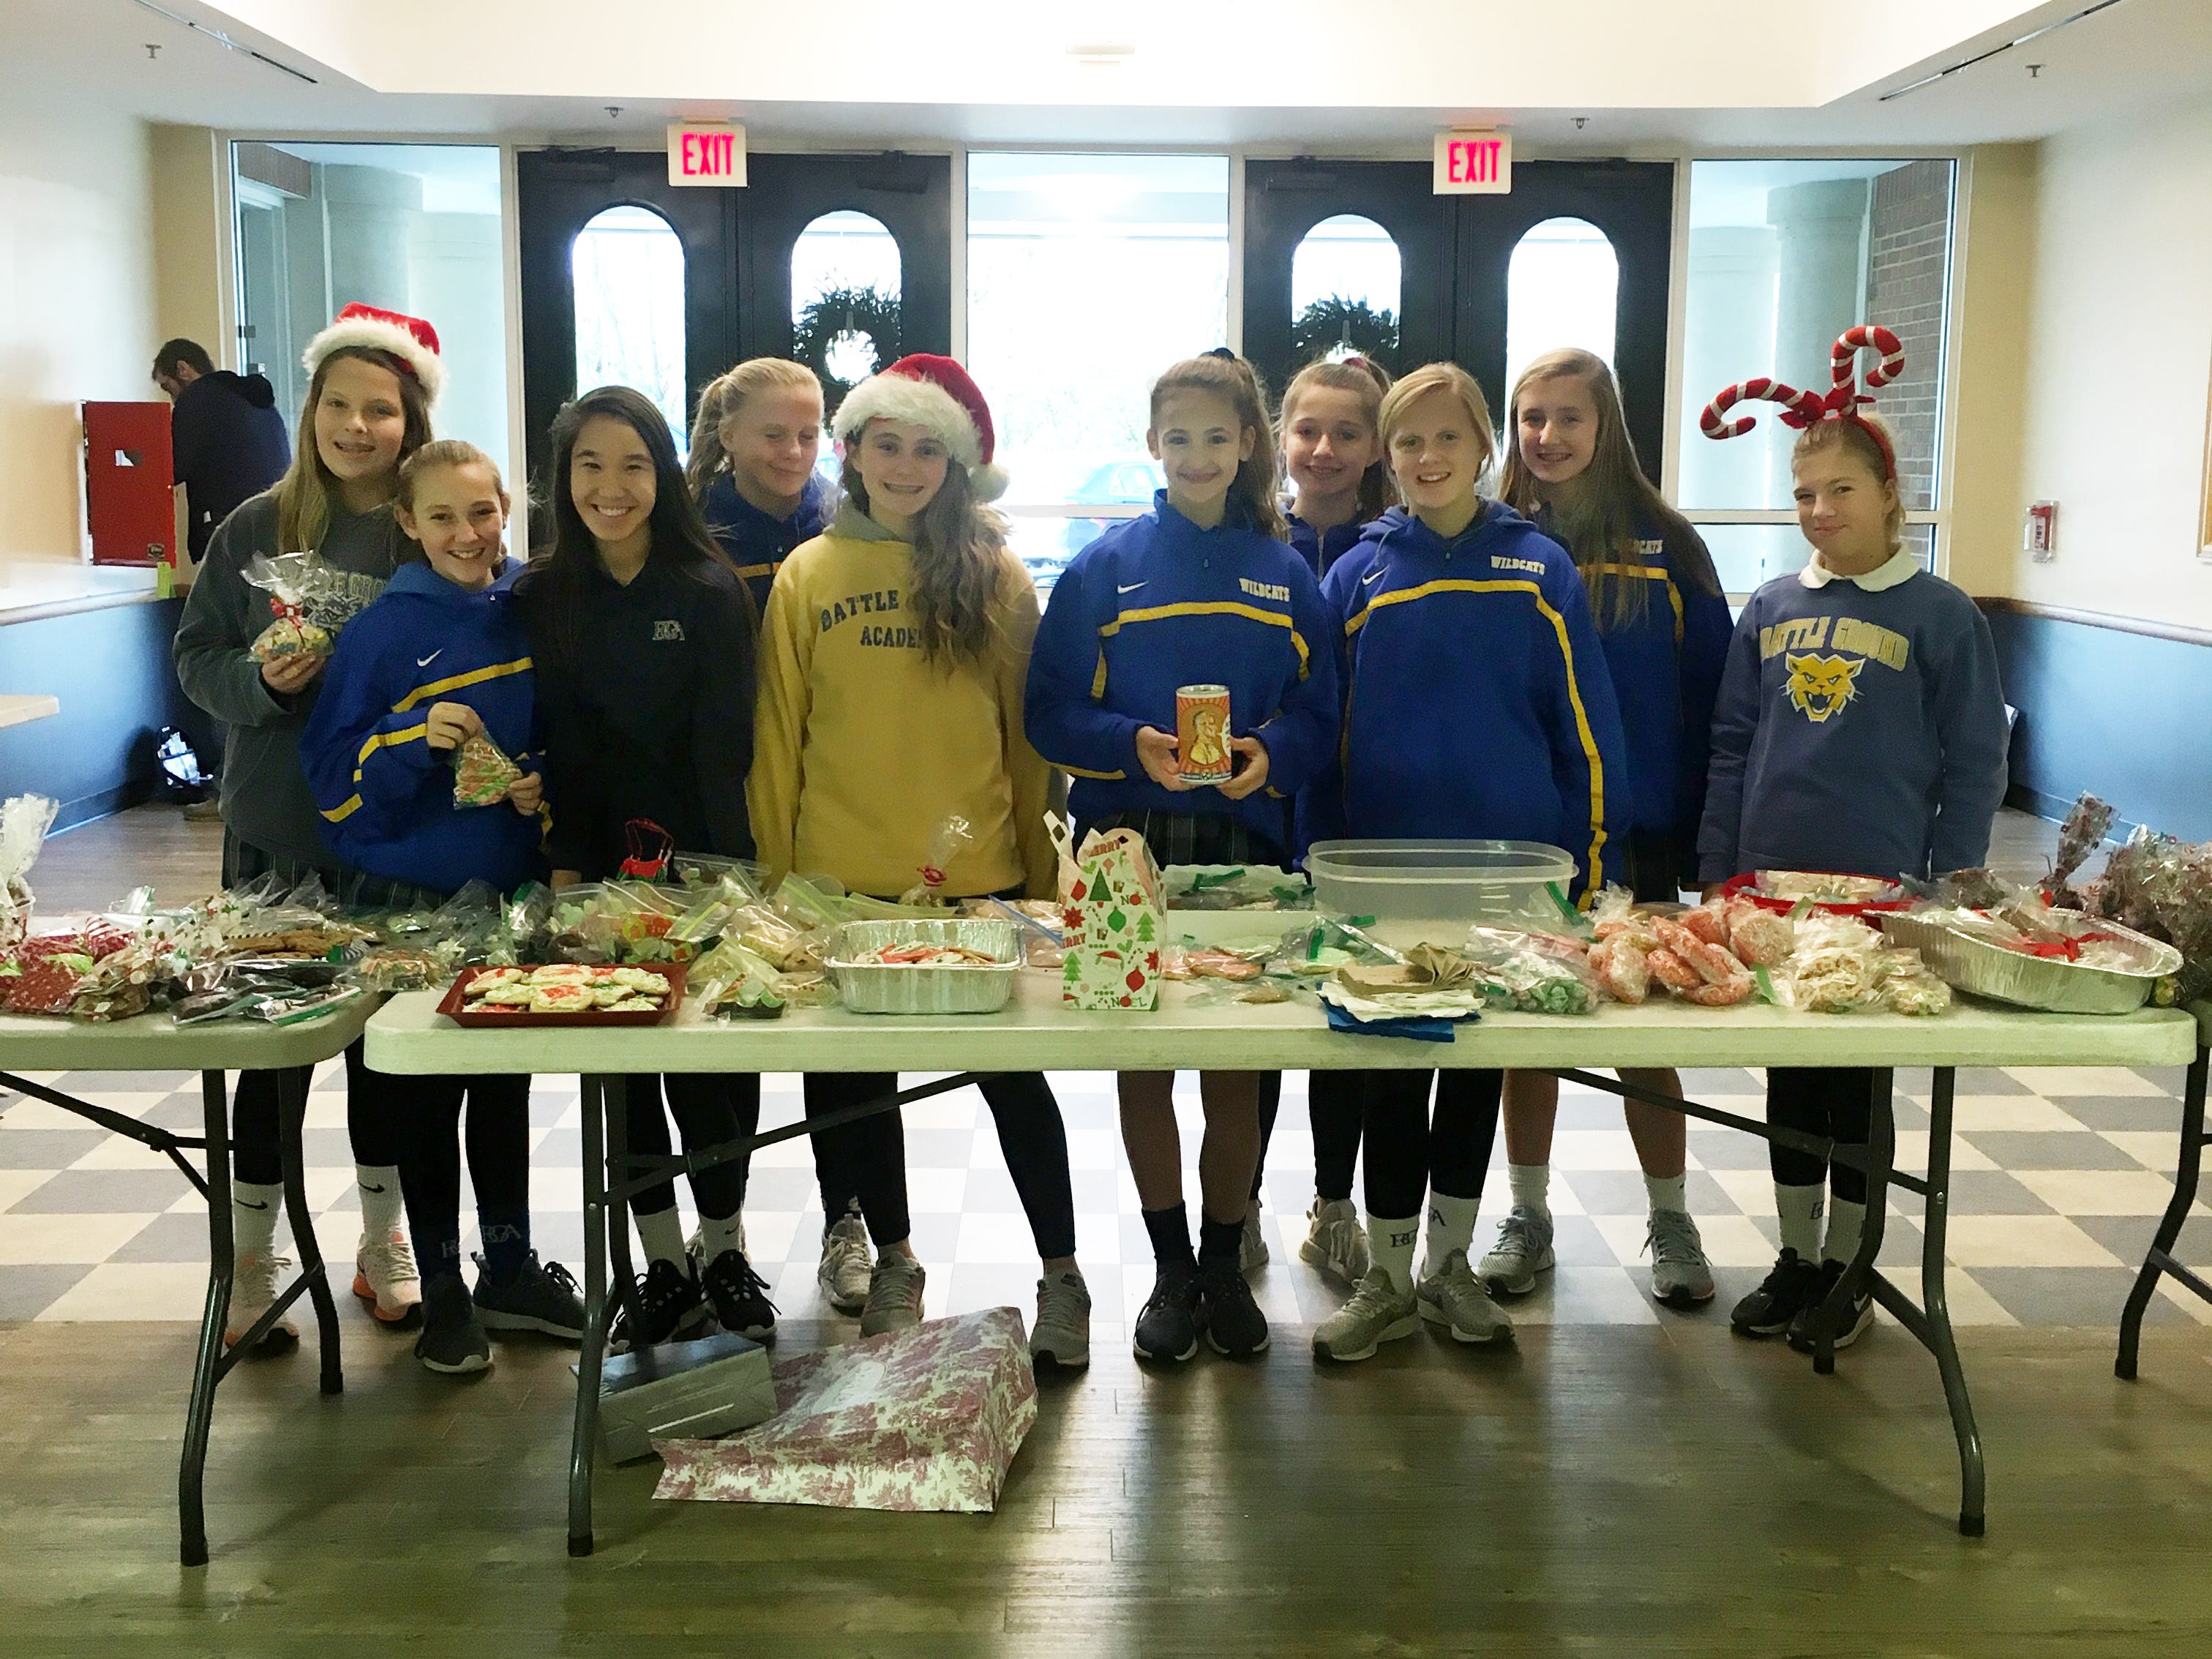 """Christmas Themed Bake Sale - """"Perfectly Sweet""""  They collected: $602.80. From left to right: Sophia Schultenover, Shea Hollis, Maddie Hill, Ella McLay, Evangelene Gallimore, Laurel Phelps, Ava Graddy, Abby McLay, Blythe Dillard, and Lucy Childs."""